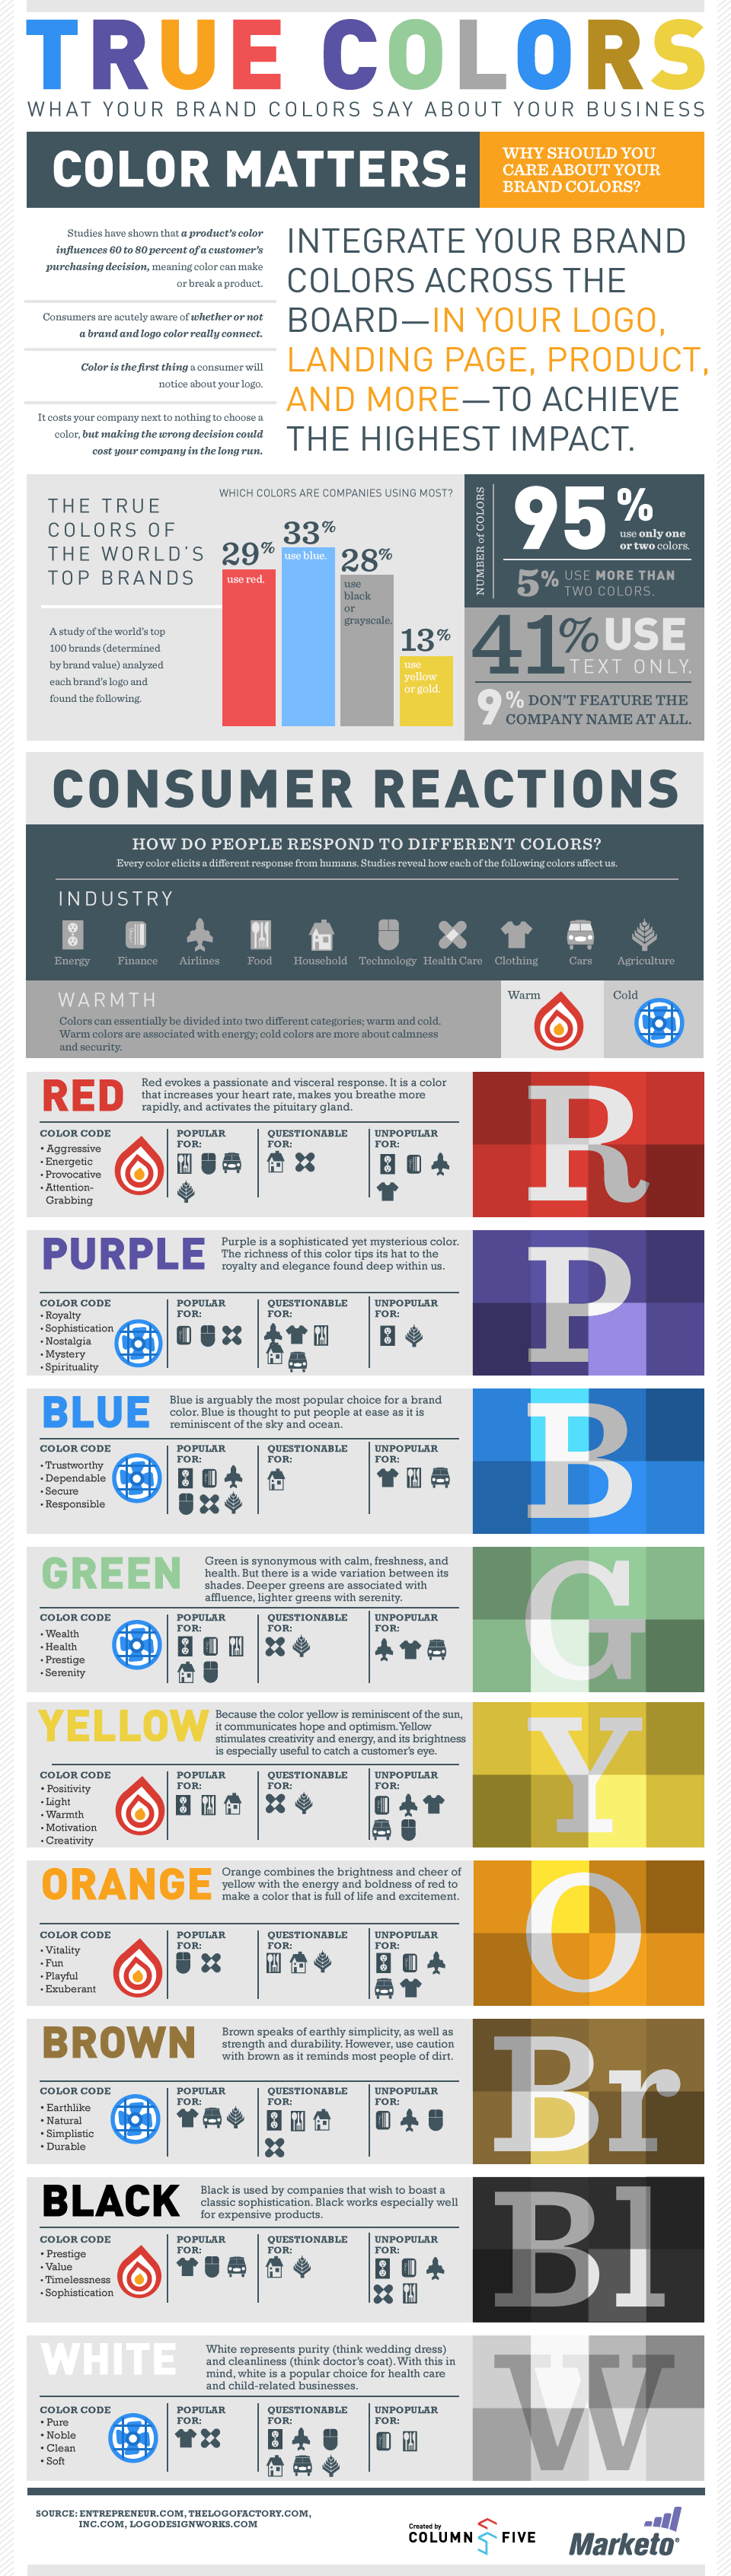 True Colors: What Your Brand Colors Say About Your Business [Marketo Infographic]